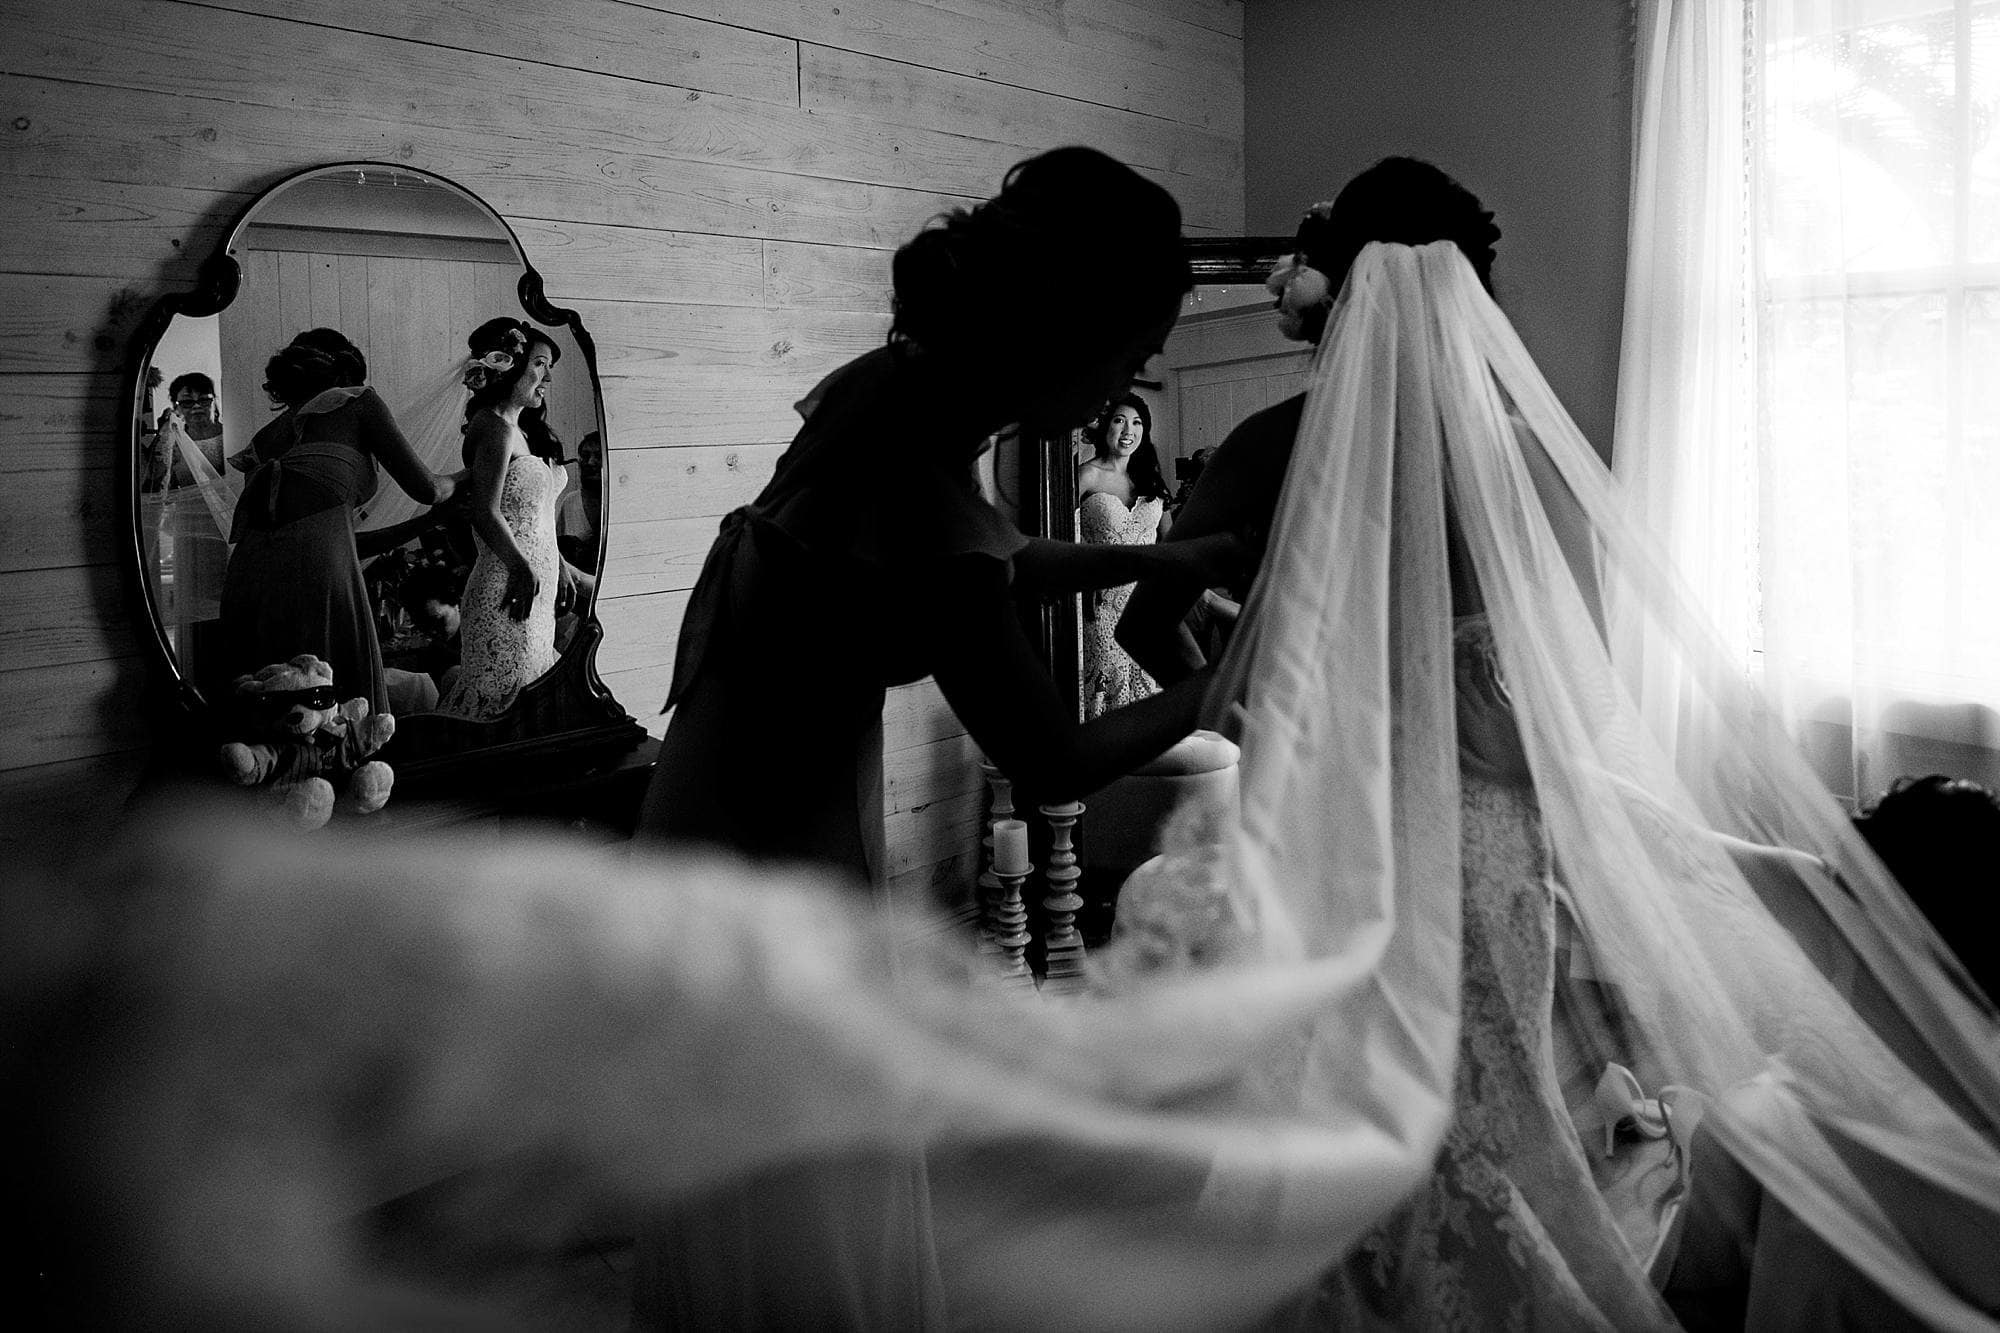 black and white image with bridal veil